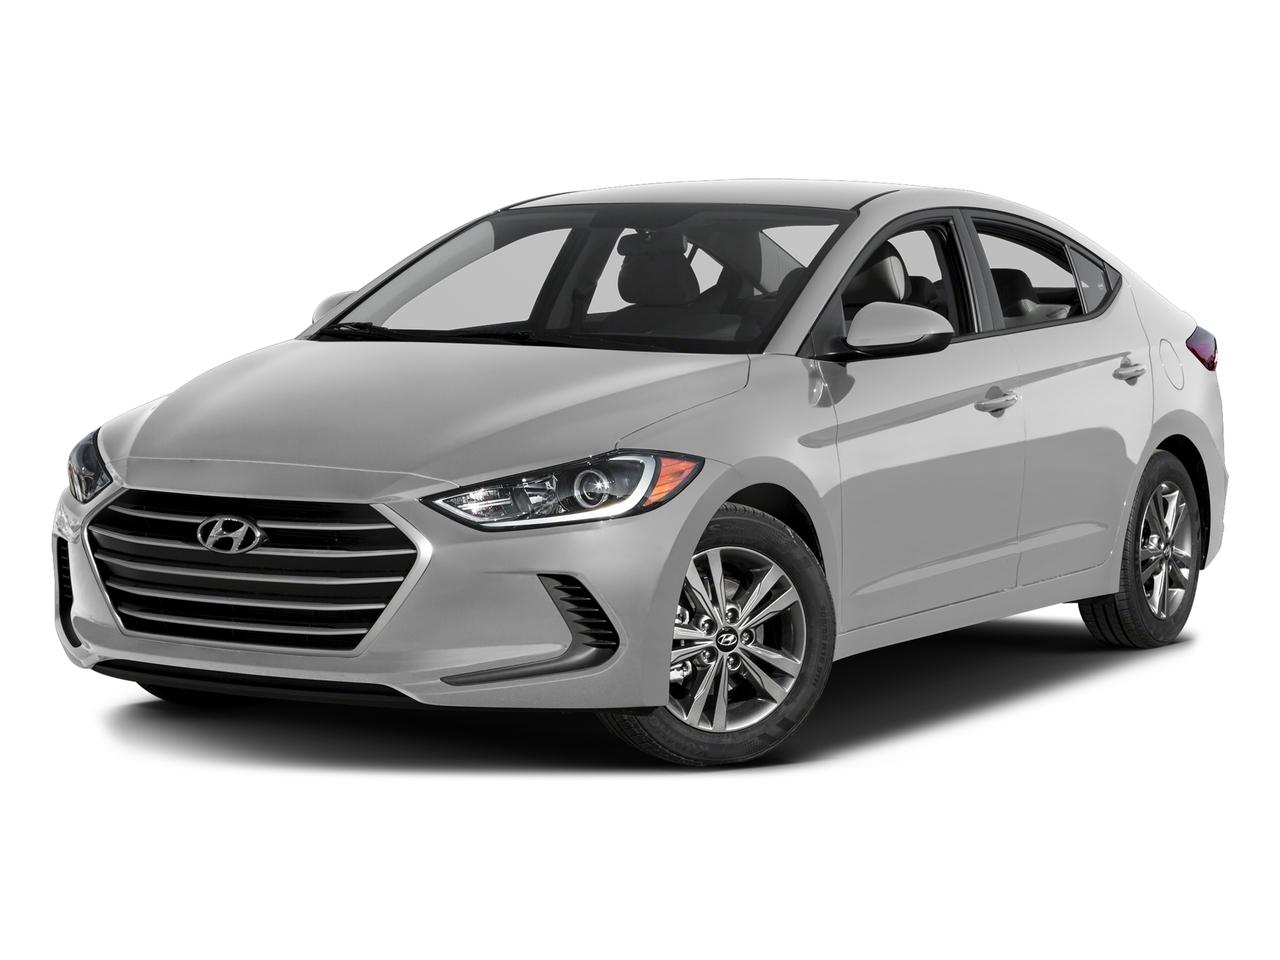 2017 Hyundai Elantra Vehicle Photo in Bowie, MD 20716